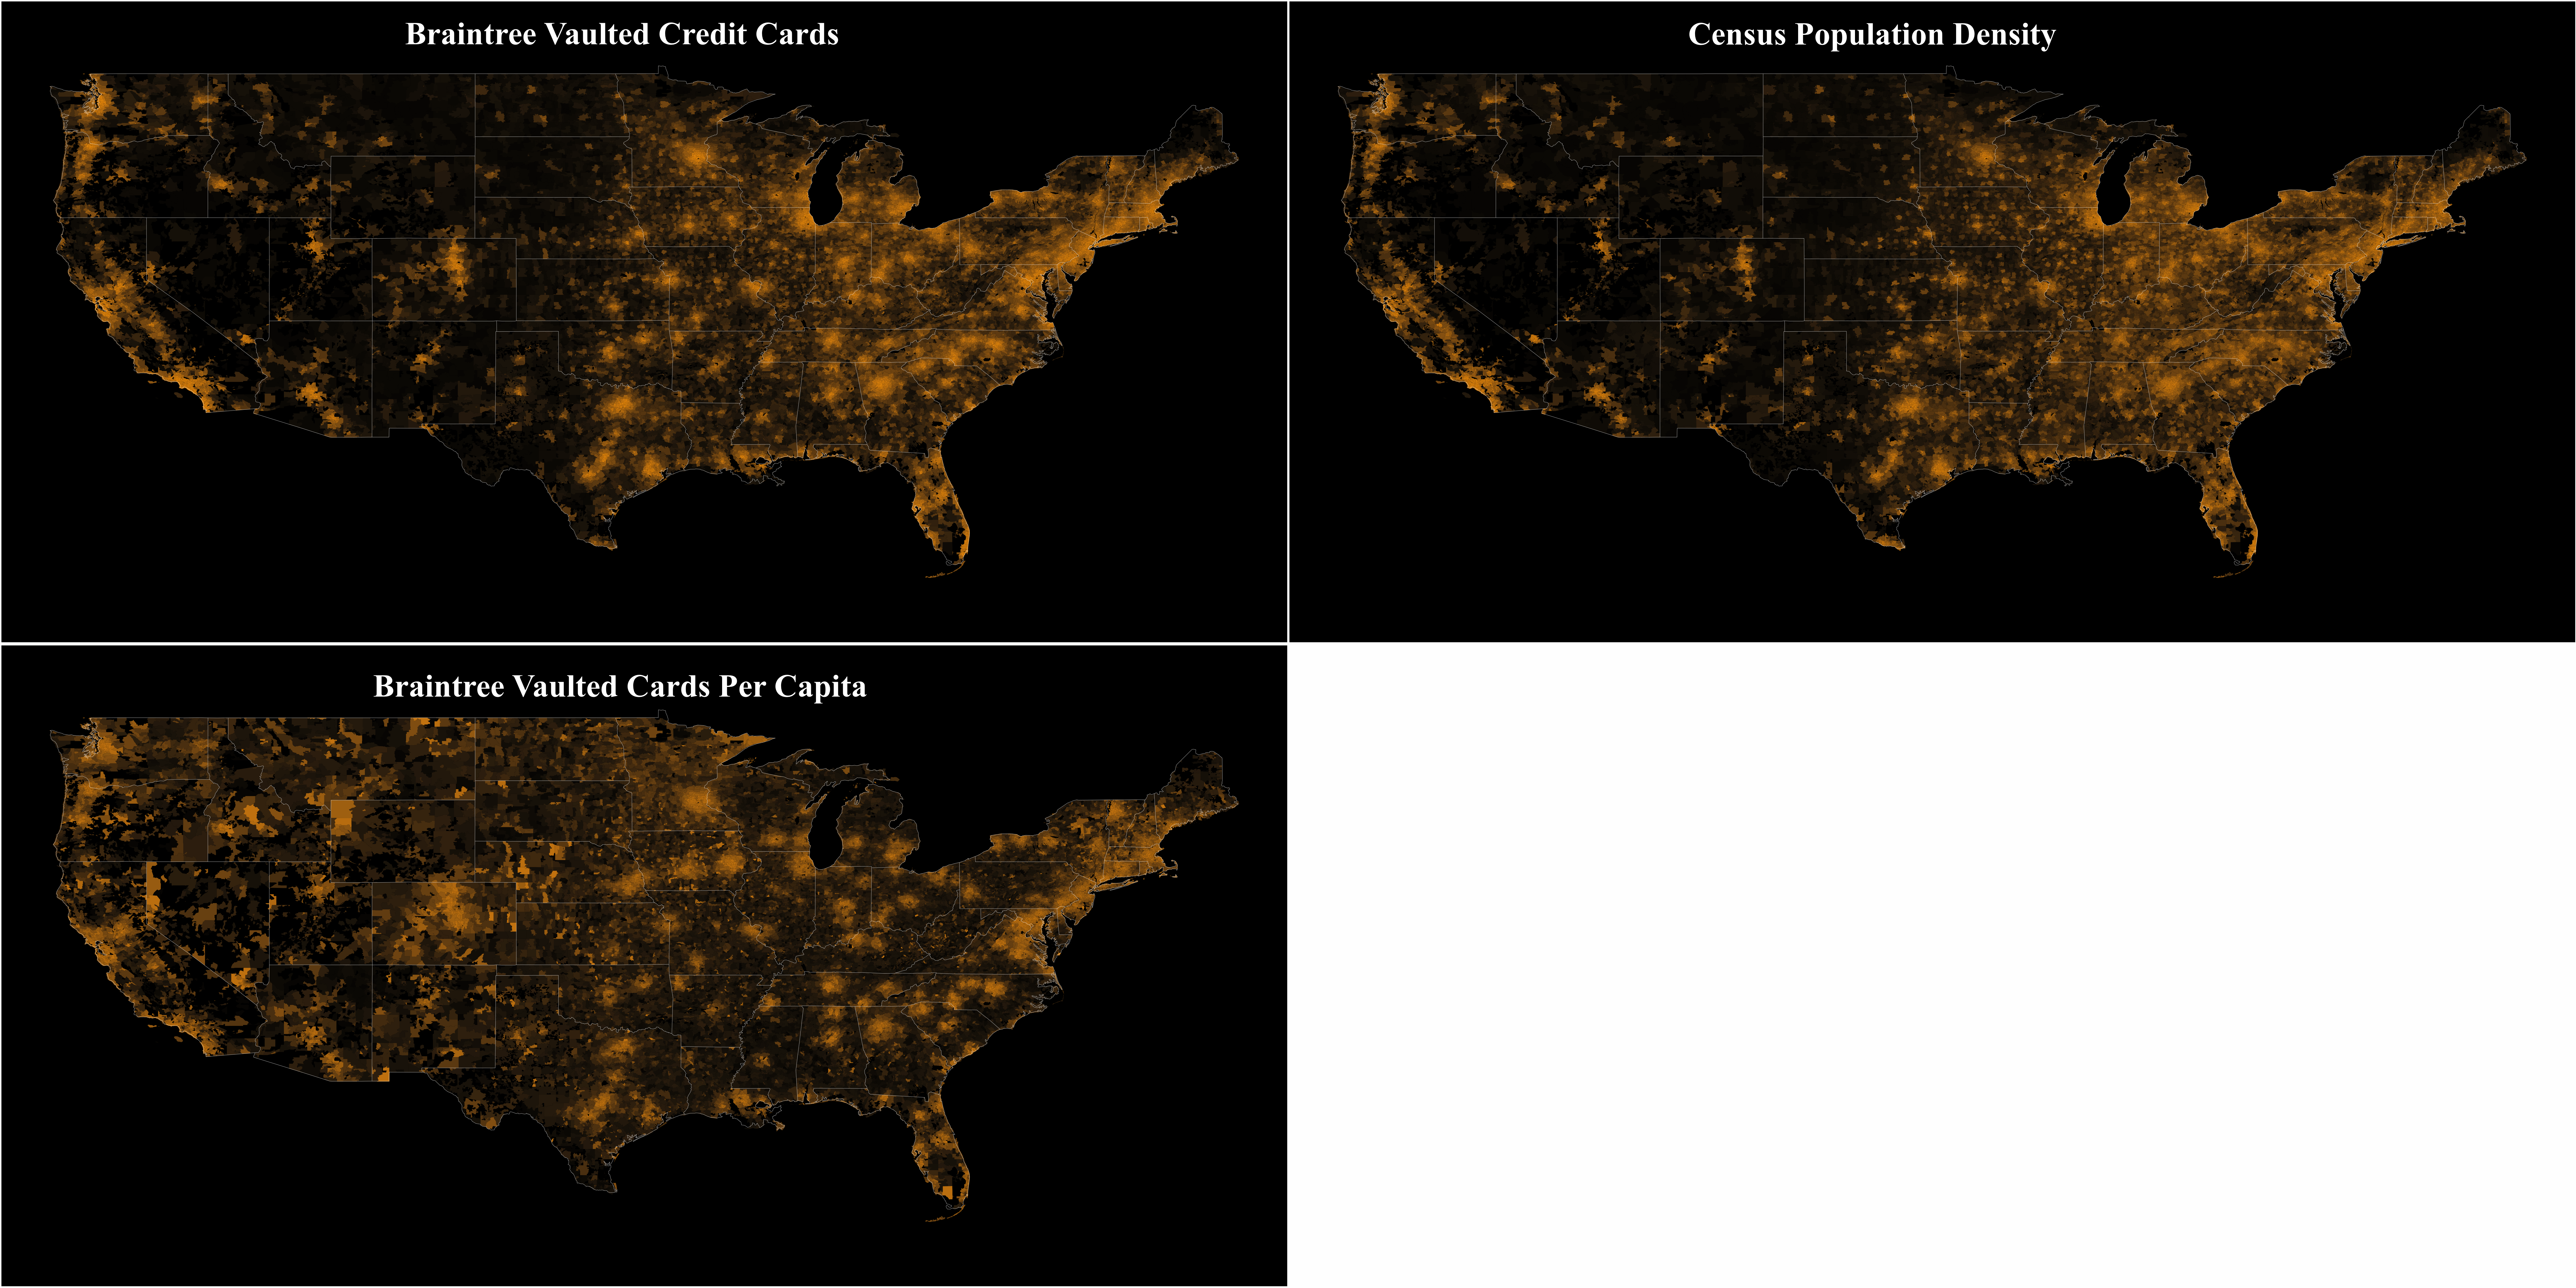 Mapping Million Credit Cards On Top Of Census Data With R - Map of the us gis r choropleth